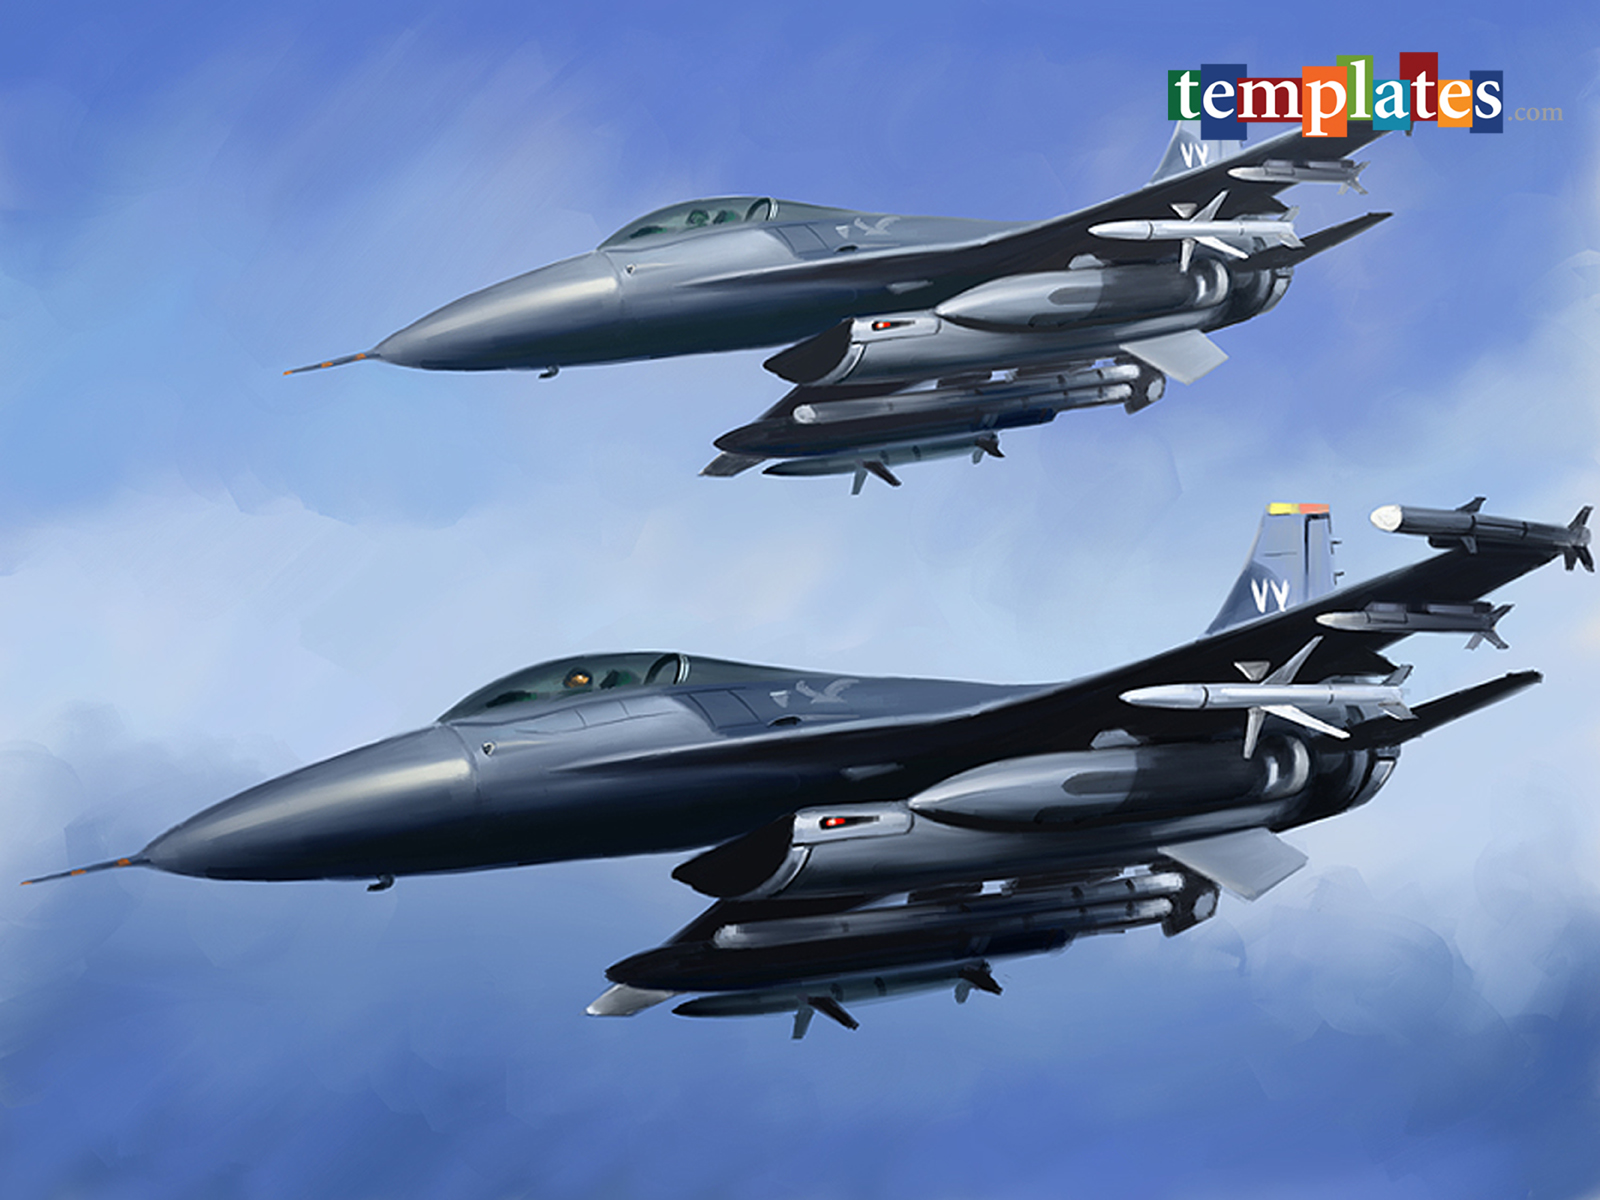 Fighter Jets wallpapers | Fighter Jets stock photos